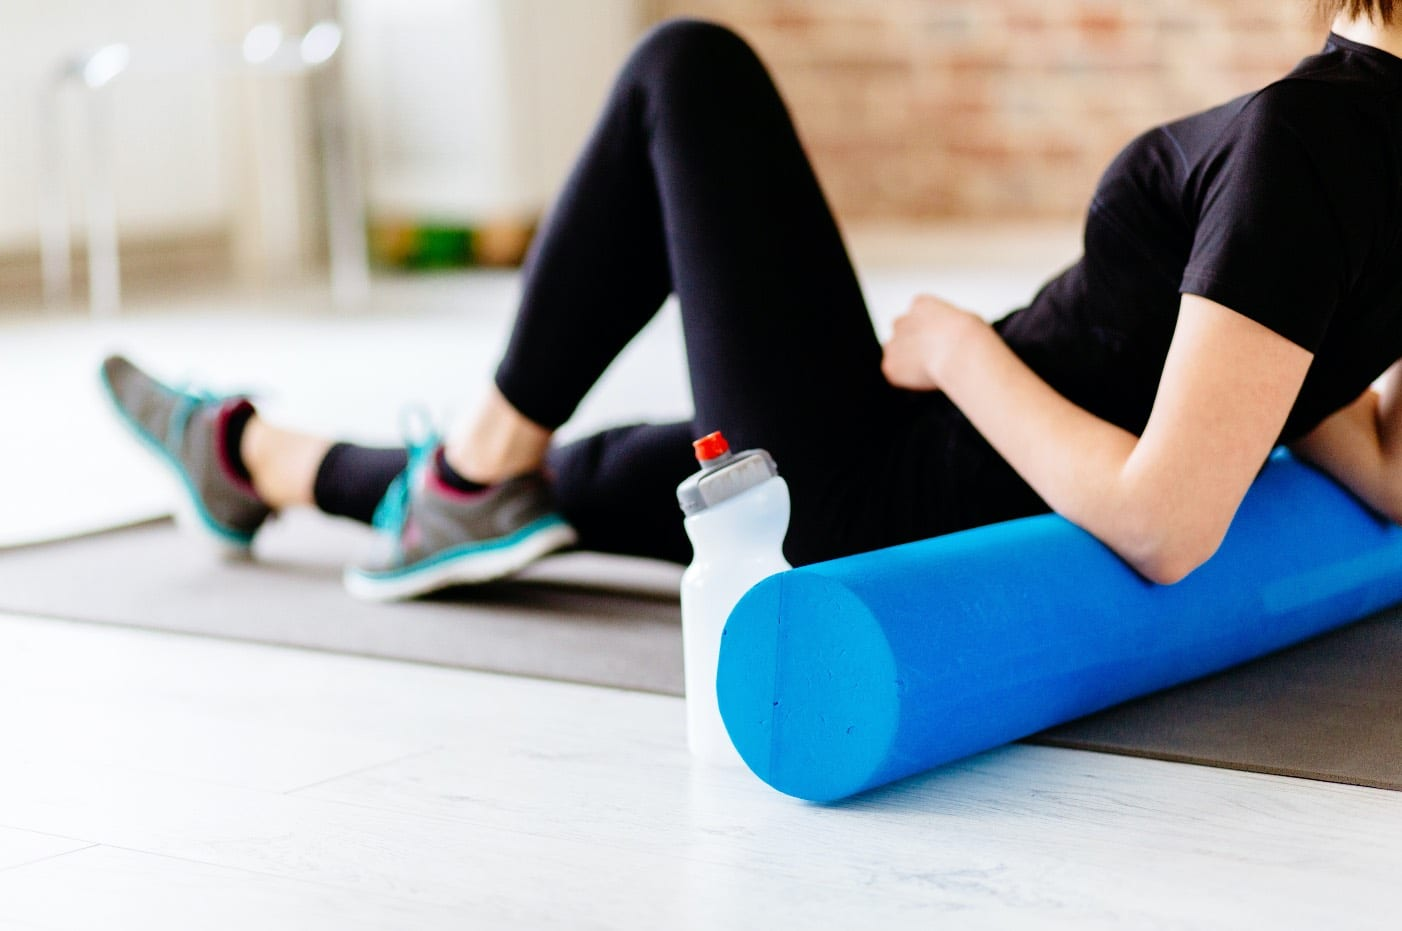 Getting the ball rolling on beating back pain could be easier than you thought.